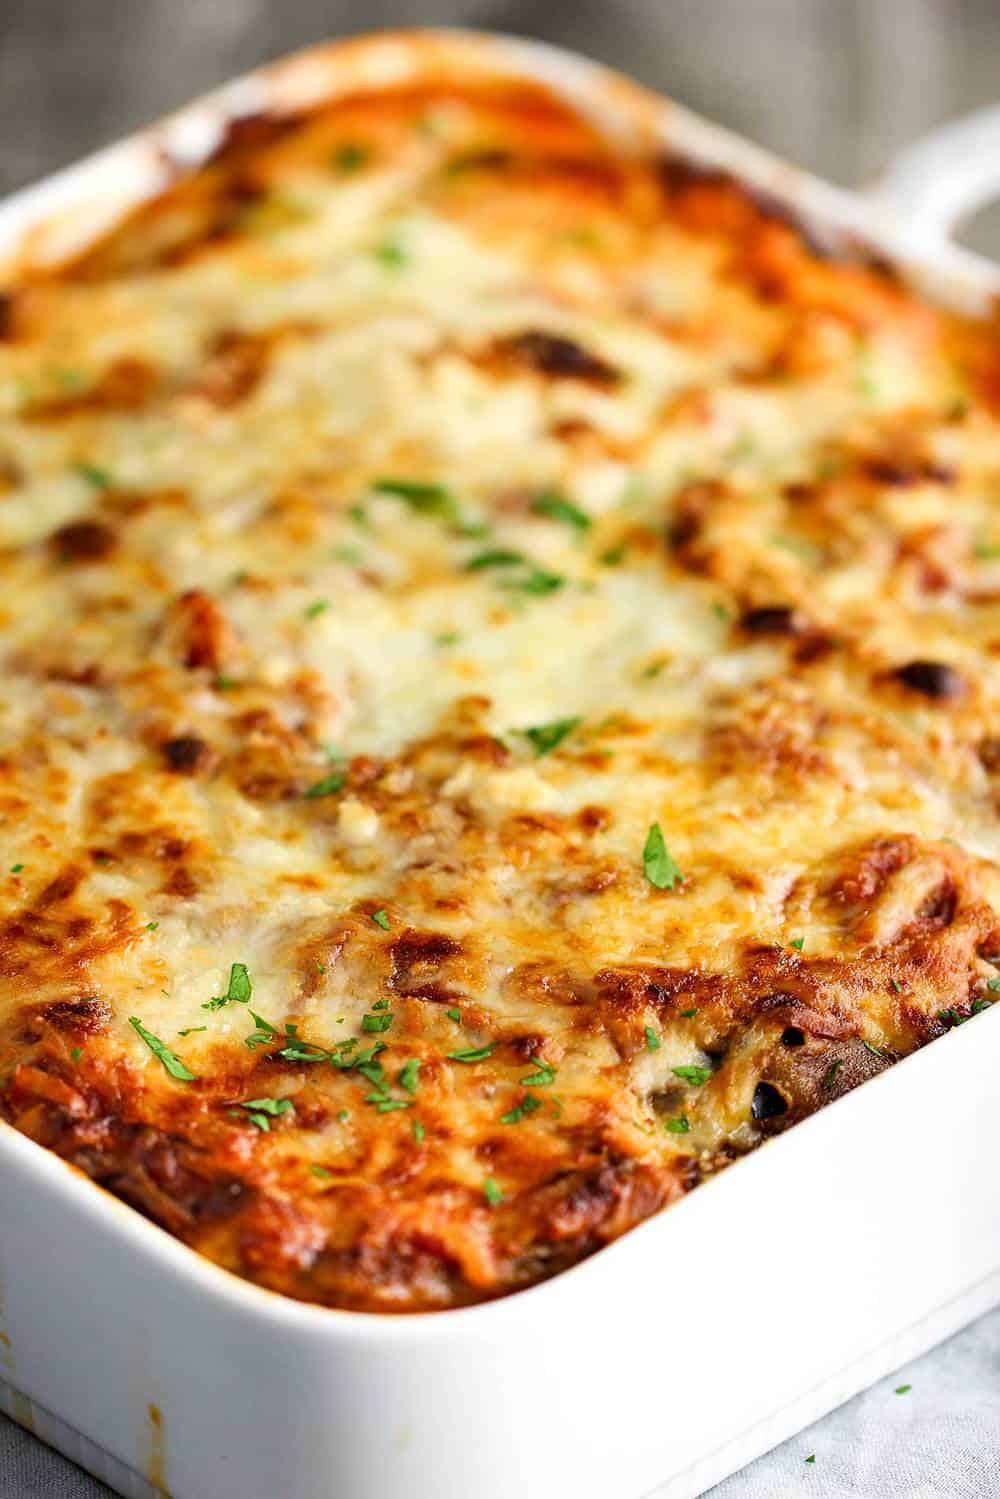 Authentic Eggplant Parmesan in a baking white dish.